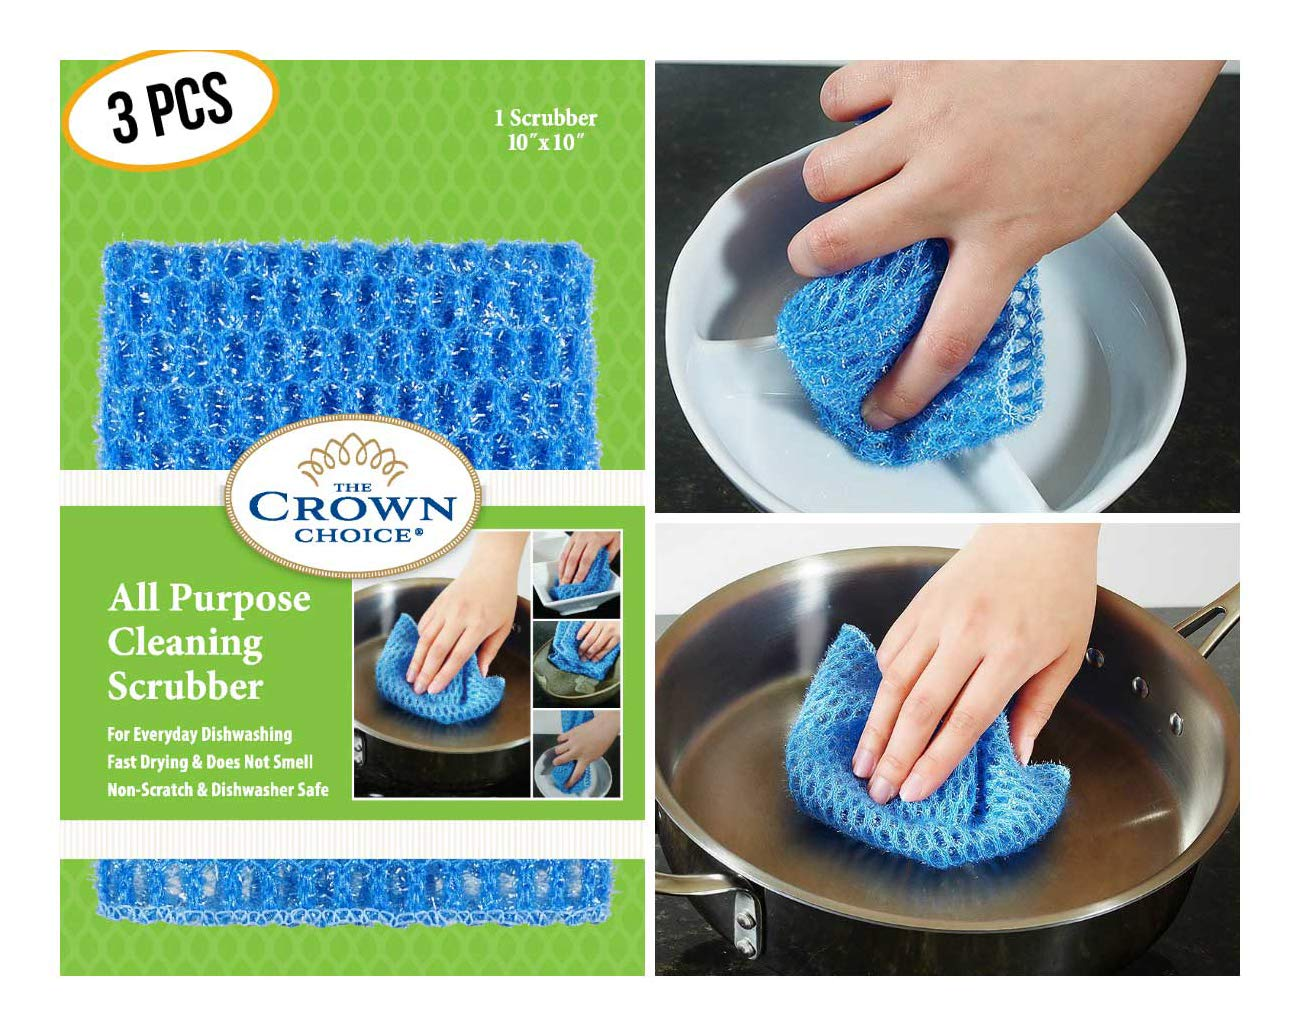 NO ODOR Dish Cloth for All Purpose Dish Washing (3PK) | No Mildew Smell from Sponges, Scrubbers, Wash Cloths, Rags, Brush | Outlast ANY Kitchen Scrubbing Sponge or Cotton Dishcloth by The Crown Choice (Image #1)